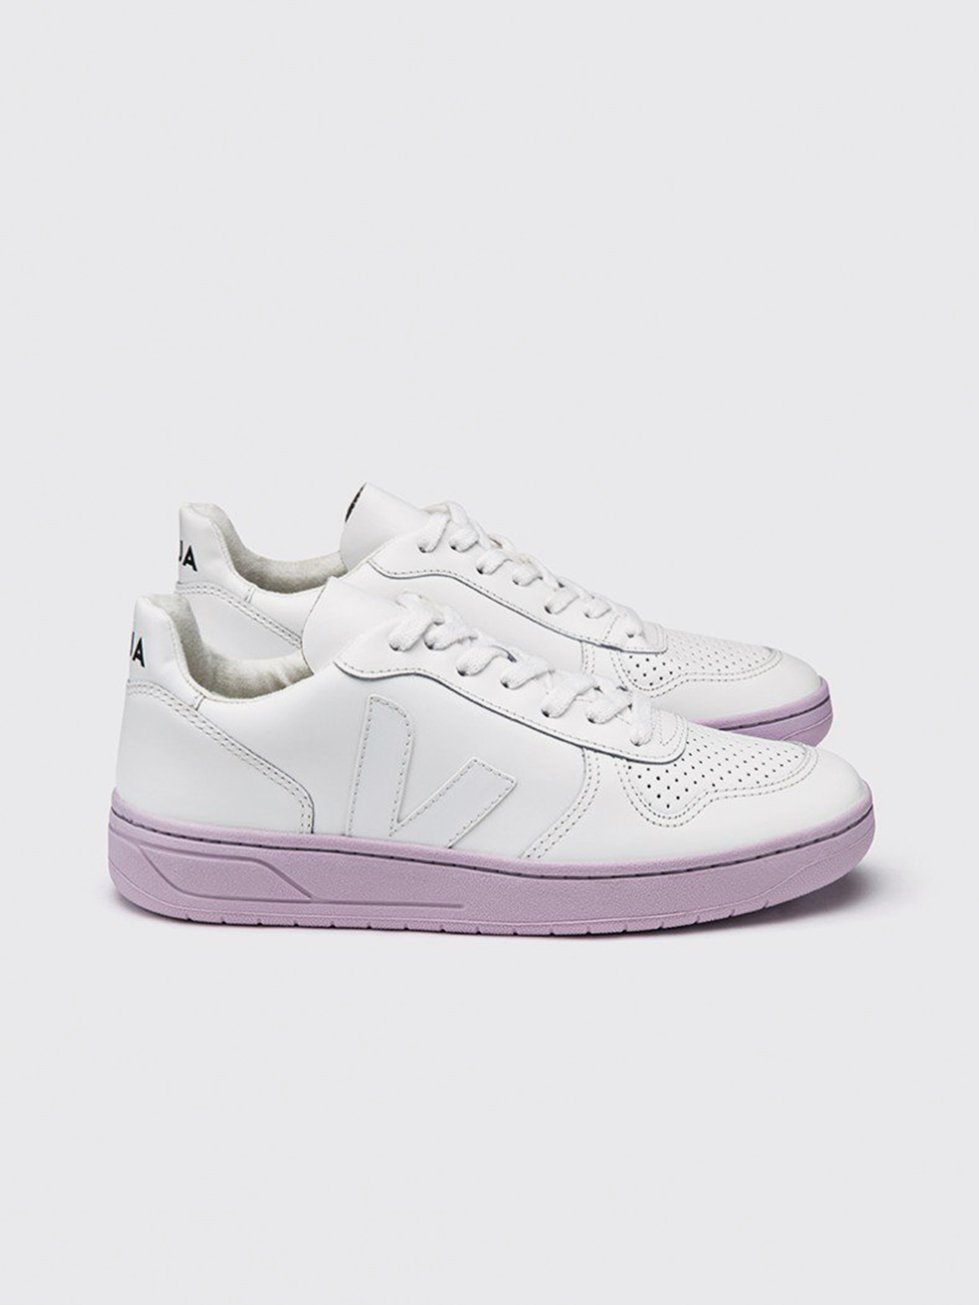 Foto do Tenis Vert V10 COURO EXTRA WHITE LILAS SOLE